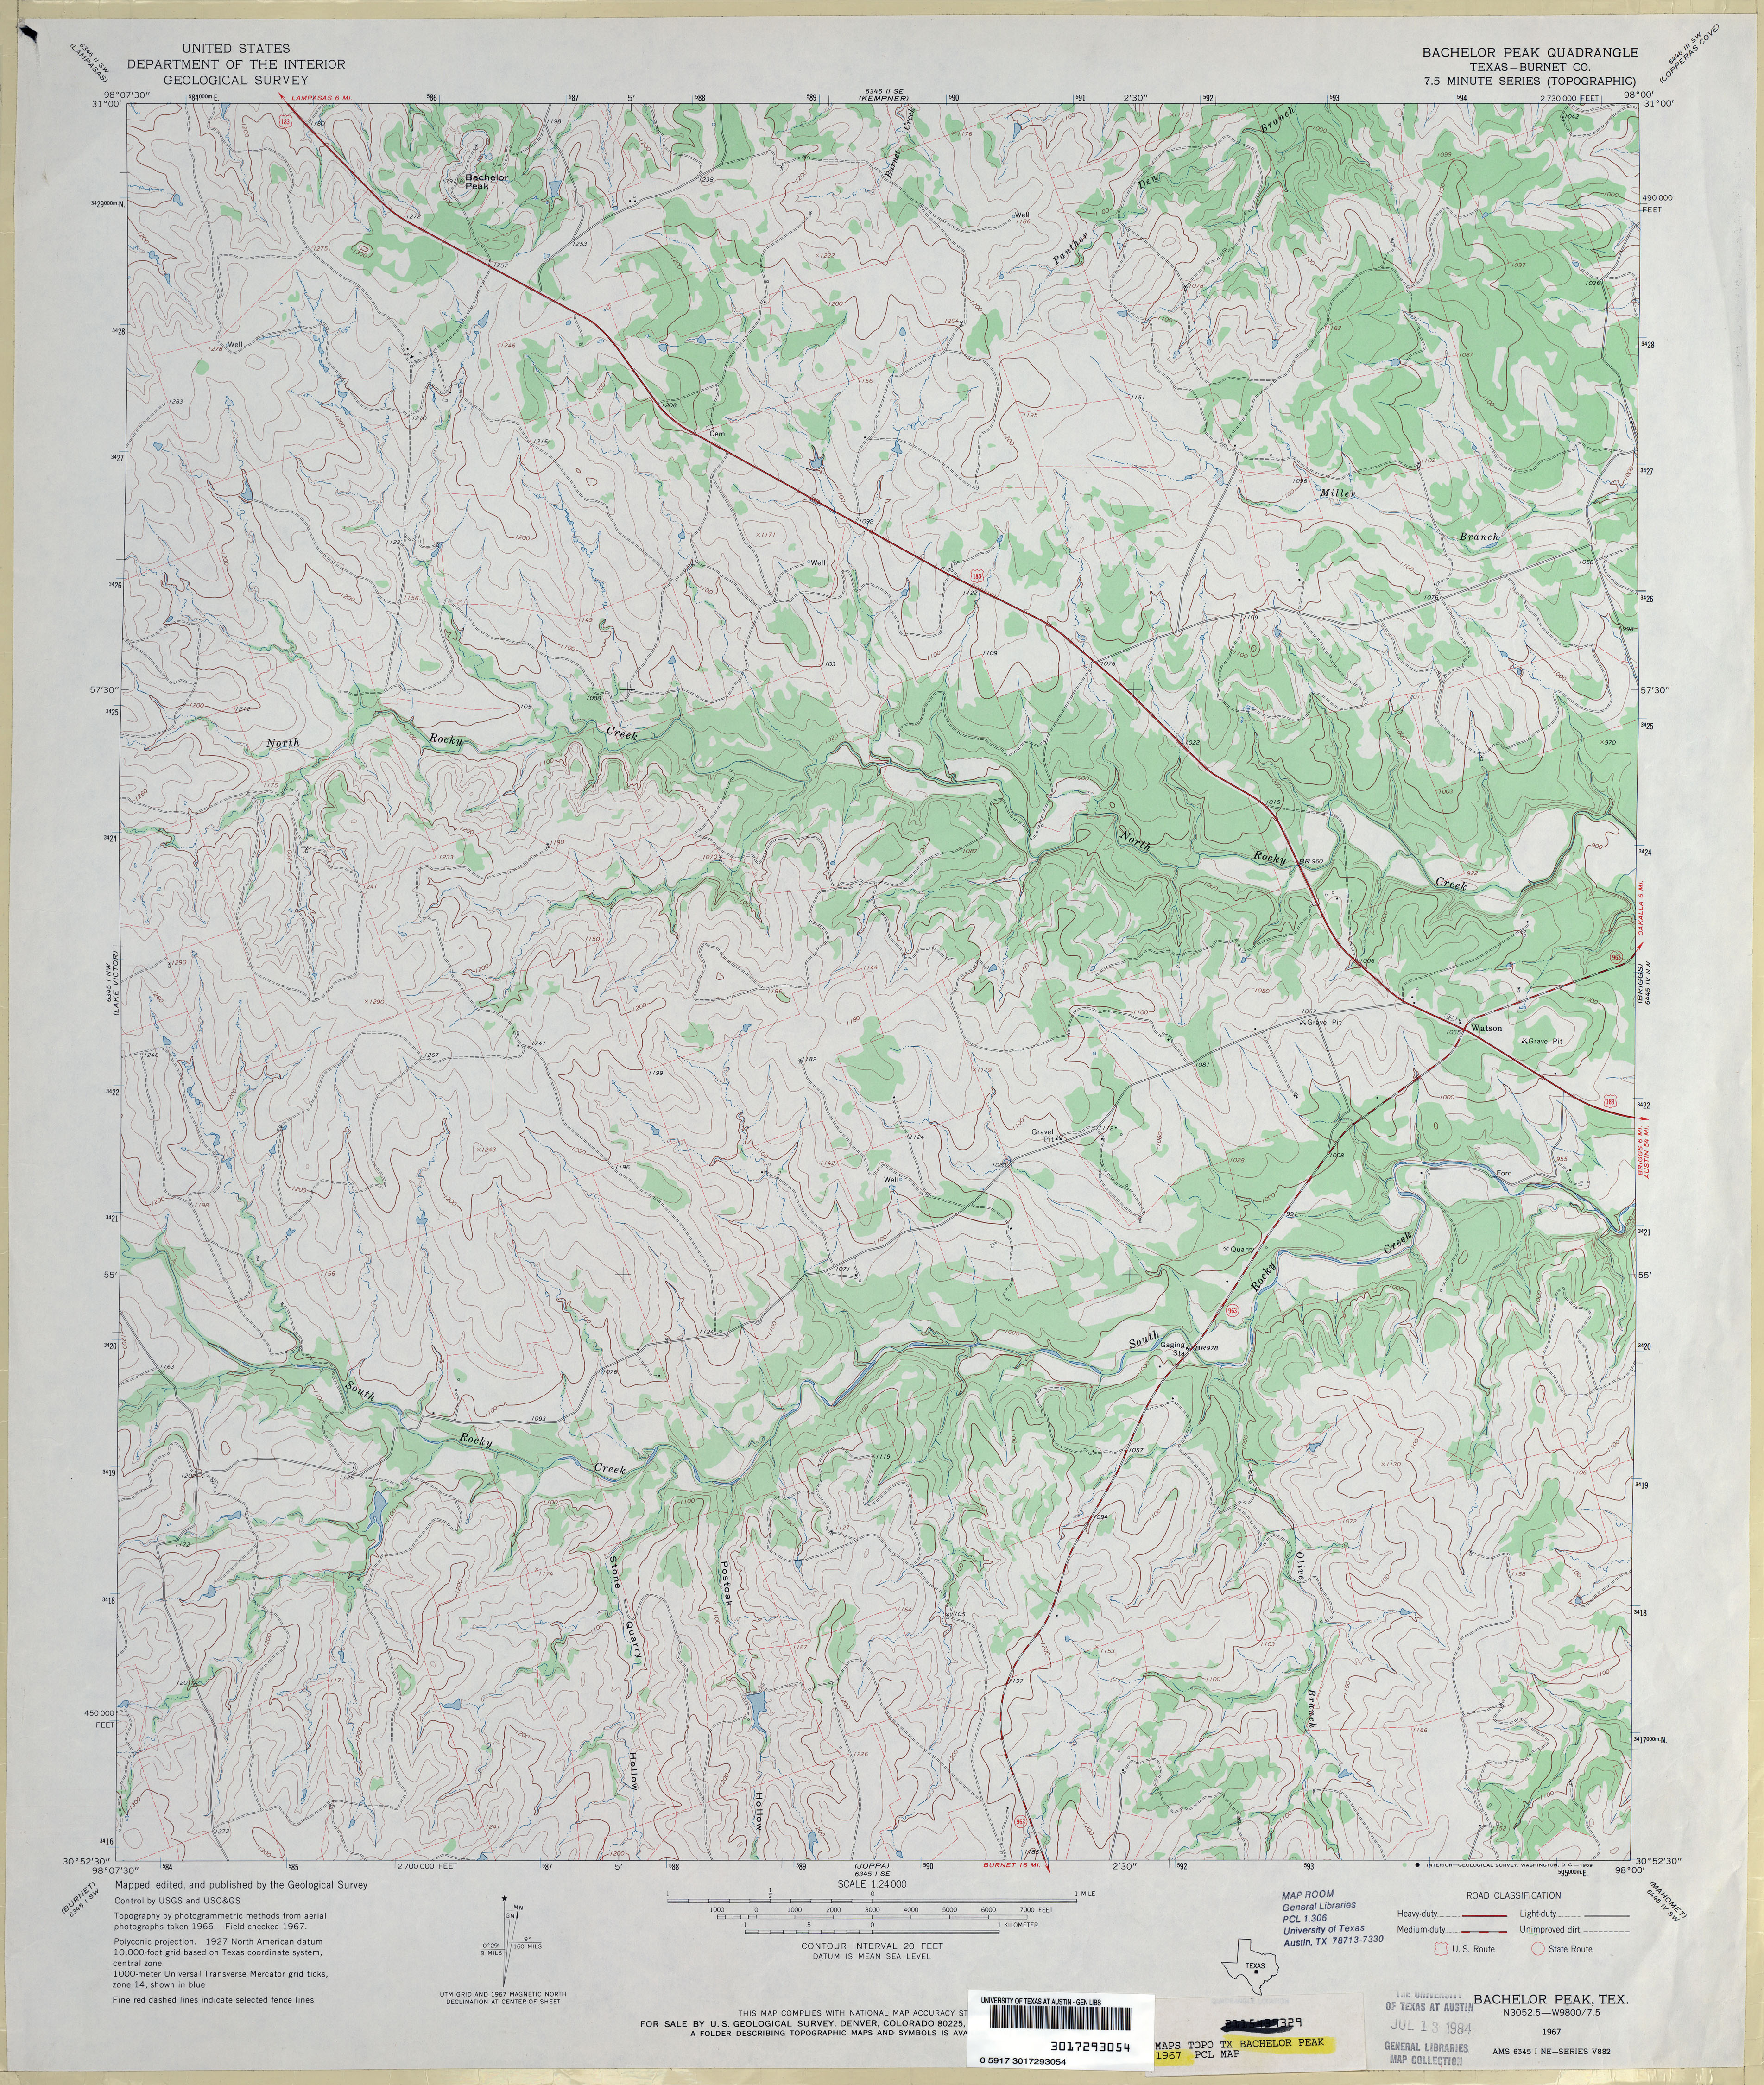 Texas Topographic Maps - Perry-Castañeda Map Collection - UT ... on topographical map of north texas, printable map of texas hill country, topographical map of texas panhandle, topographical map of east texas, photographs of texas hill country, topographical map of west texas,